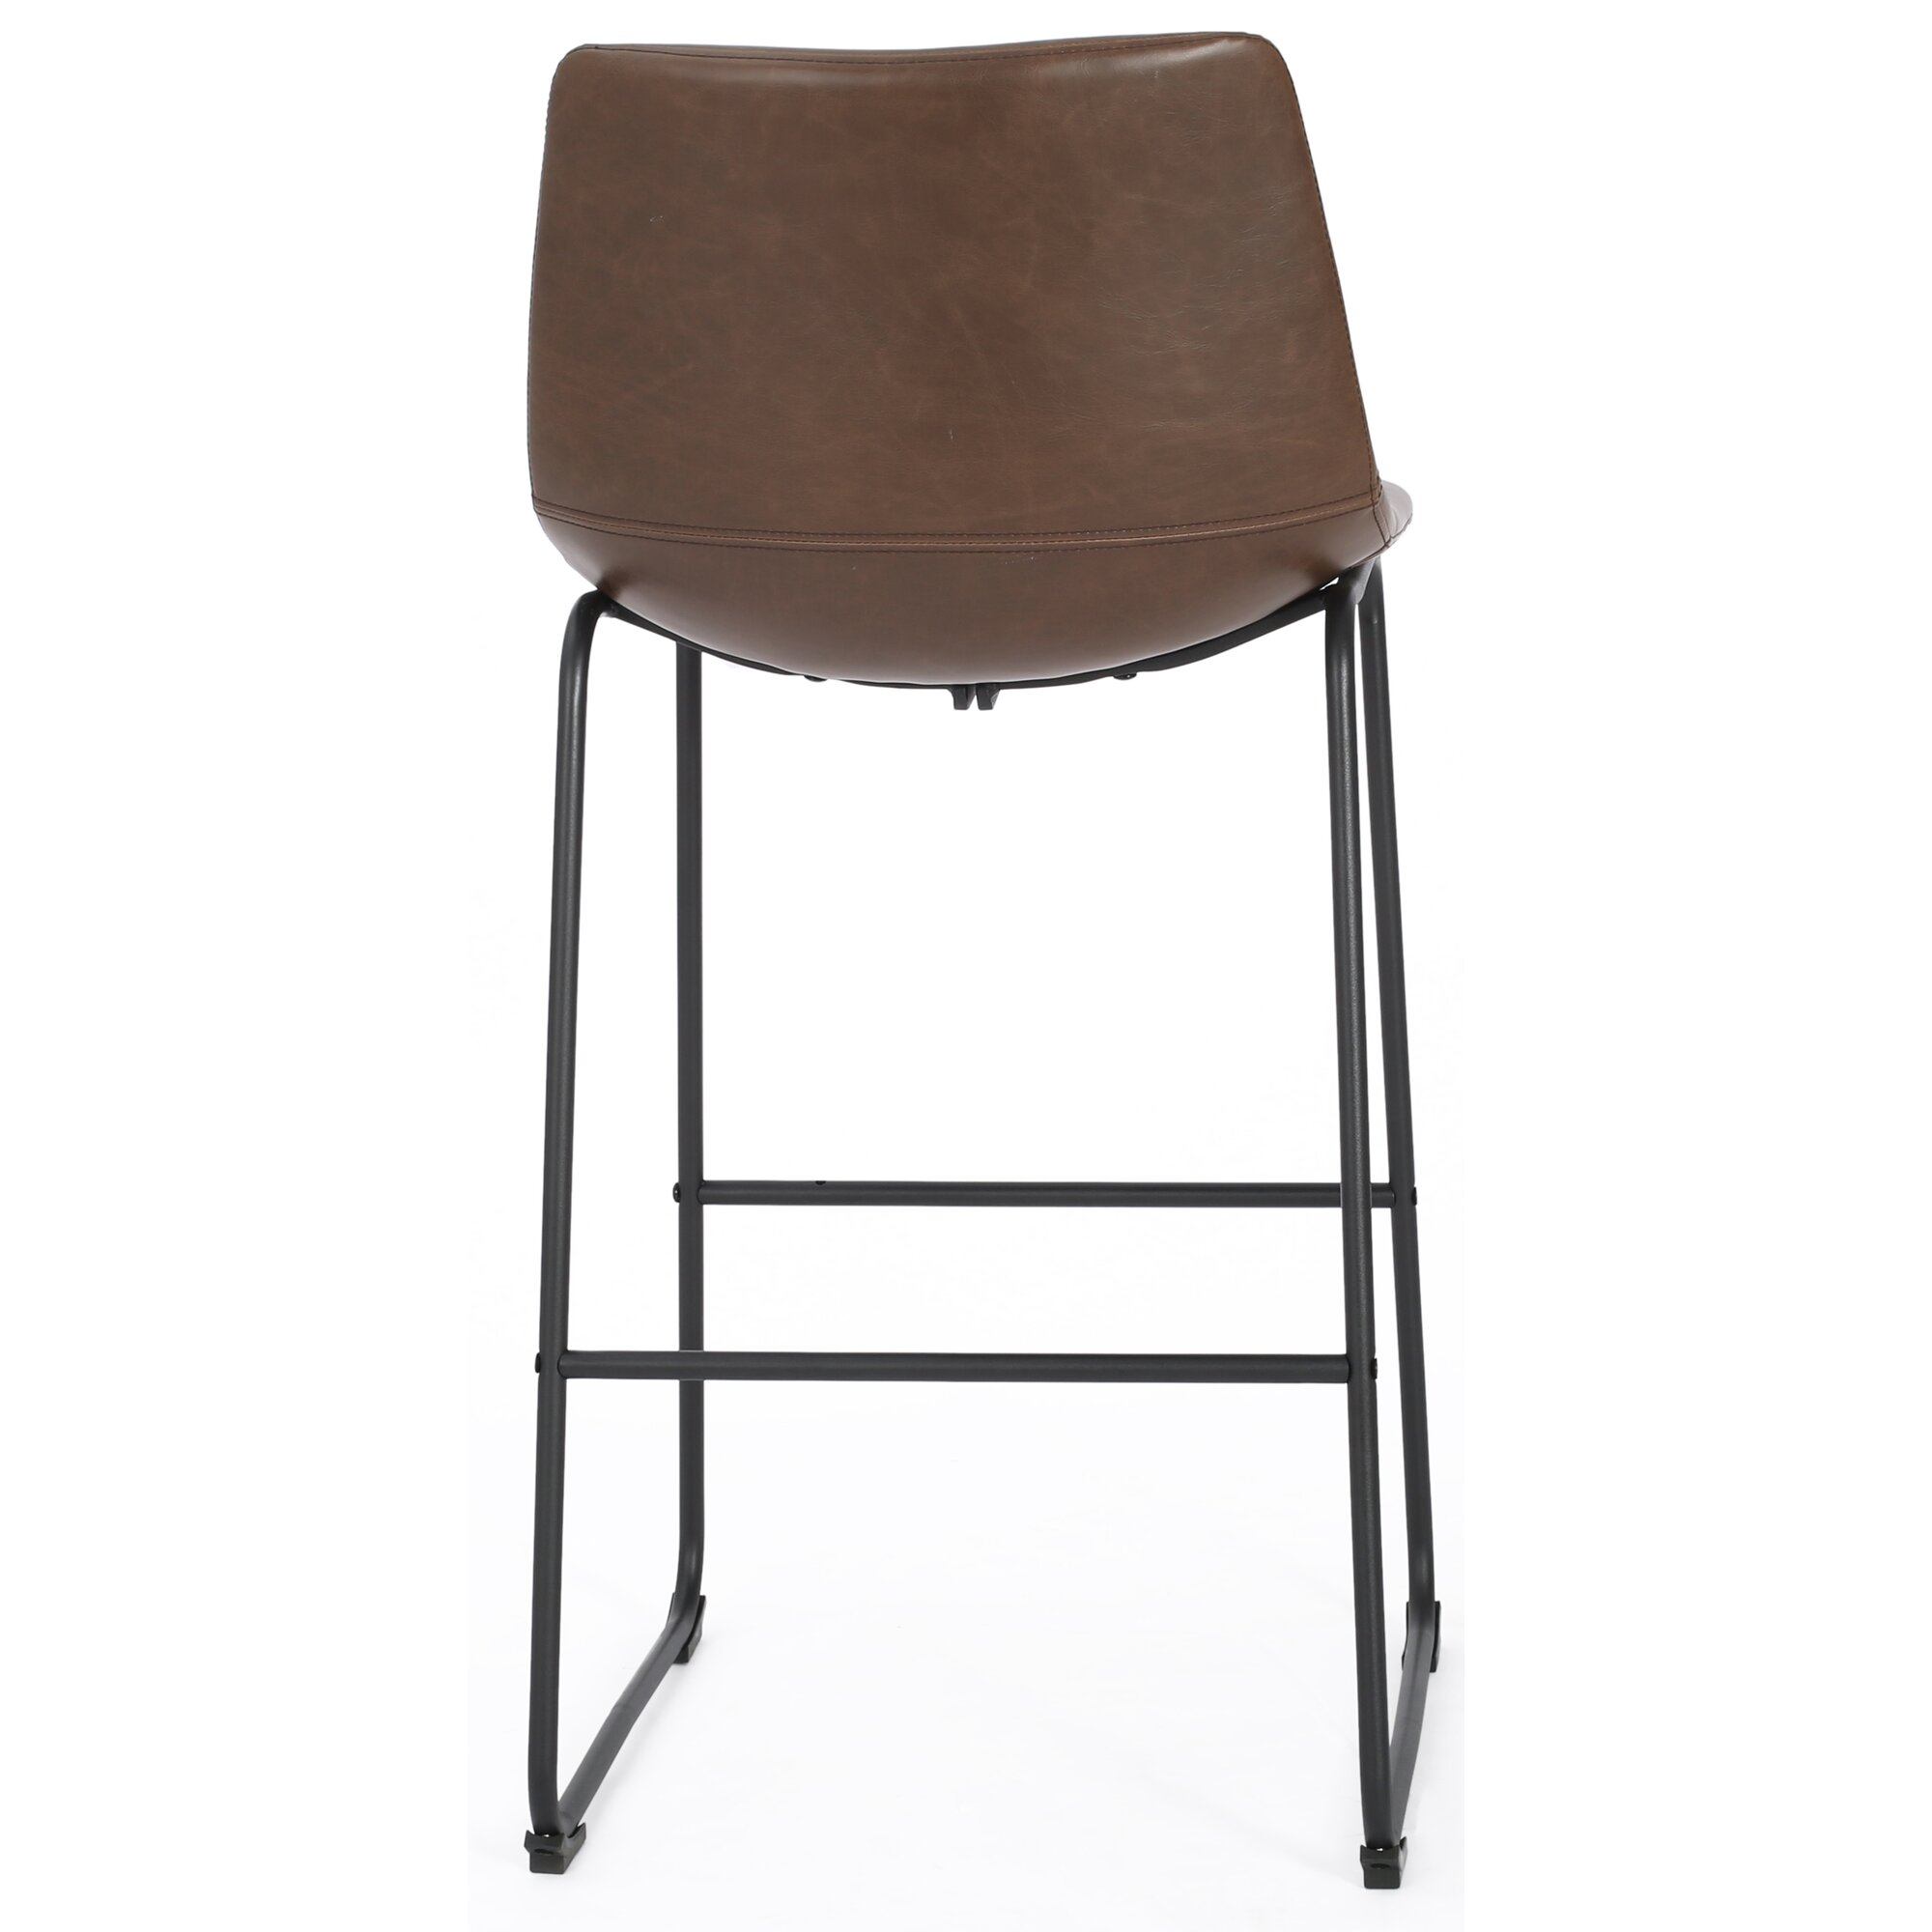 Home Loft Concepts Landon 30quot Bar Stool amp Reviews Wayfair : Landon3022BarStool from www.wayfair.com size 2000 x 2000 jpeg 116kB